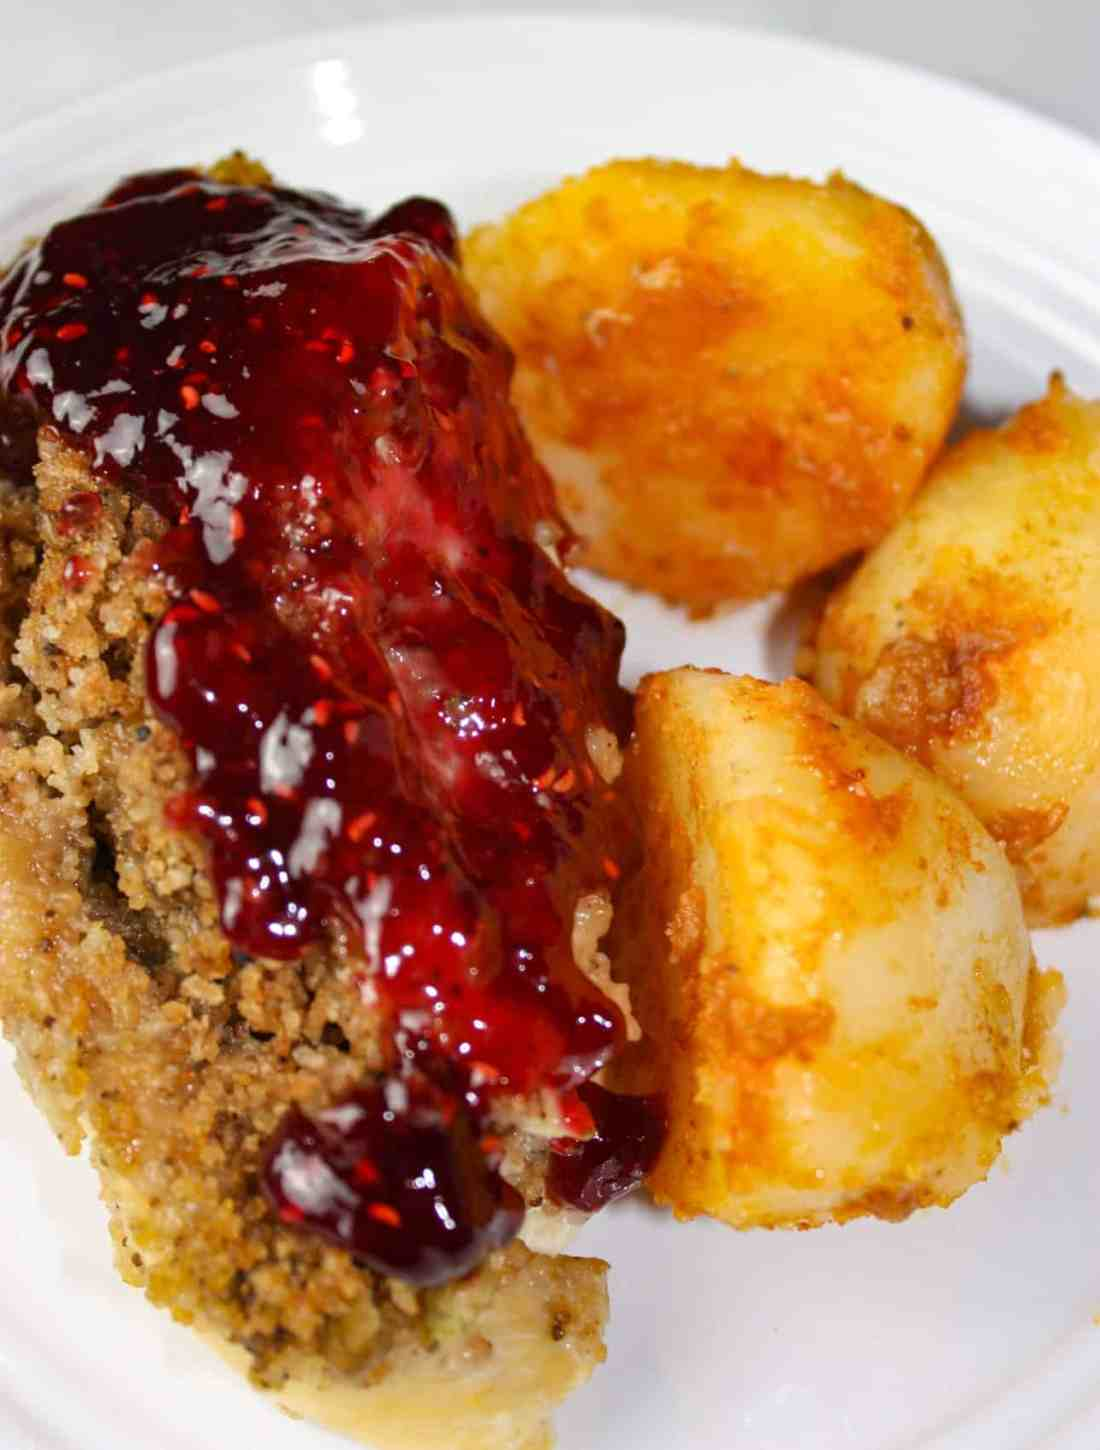 Instant Pot Stuffed Chicken Breasts and Seasoned Potatoes is a gourmet style meal that is very appealing when plated.  Each chicken breast is loaded with gluten free stuffing and then smothered in a tangy raspberry sauce.